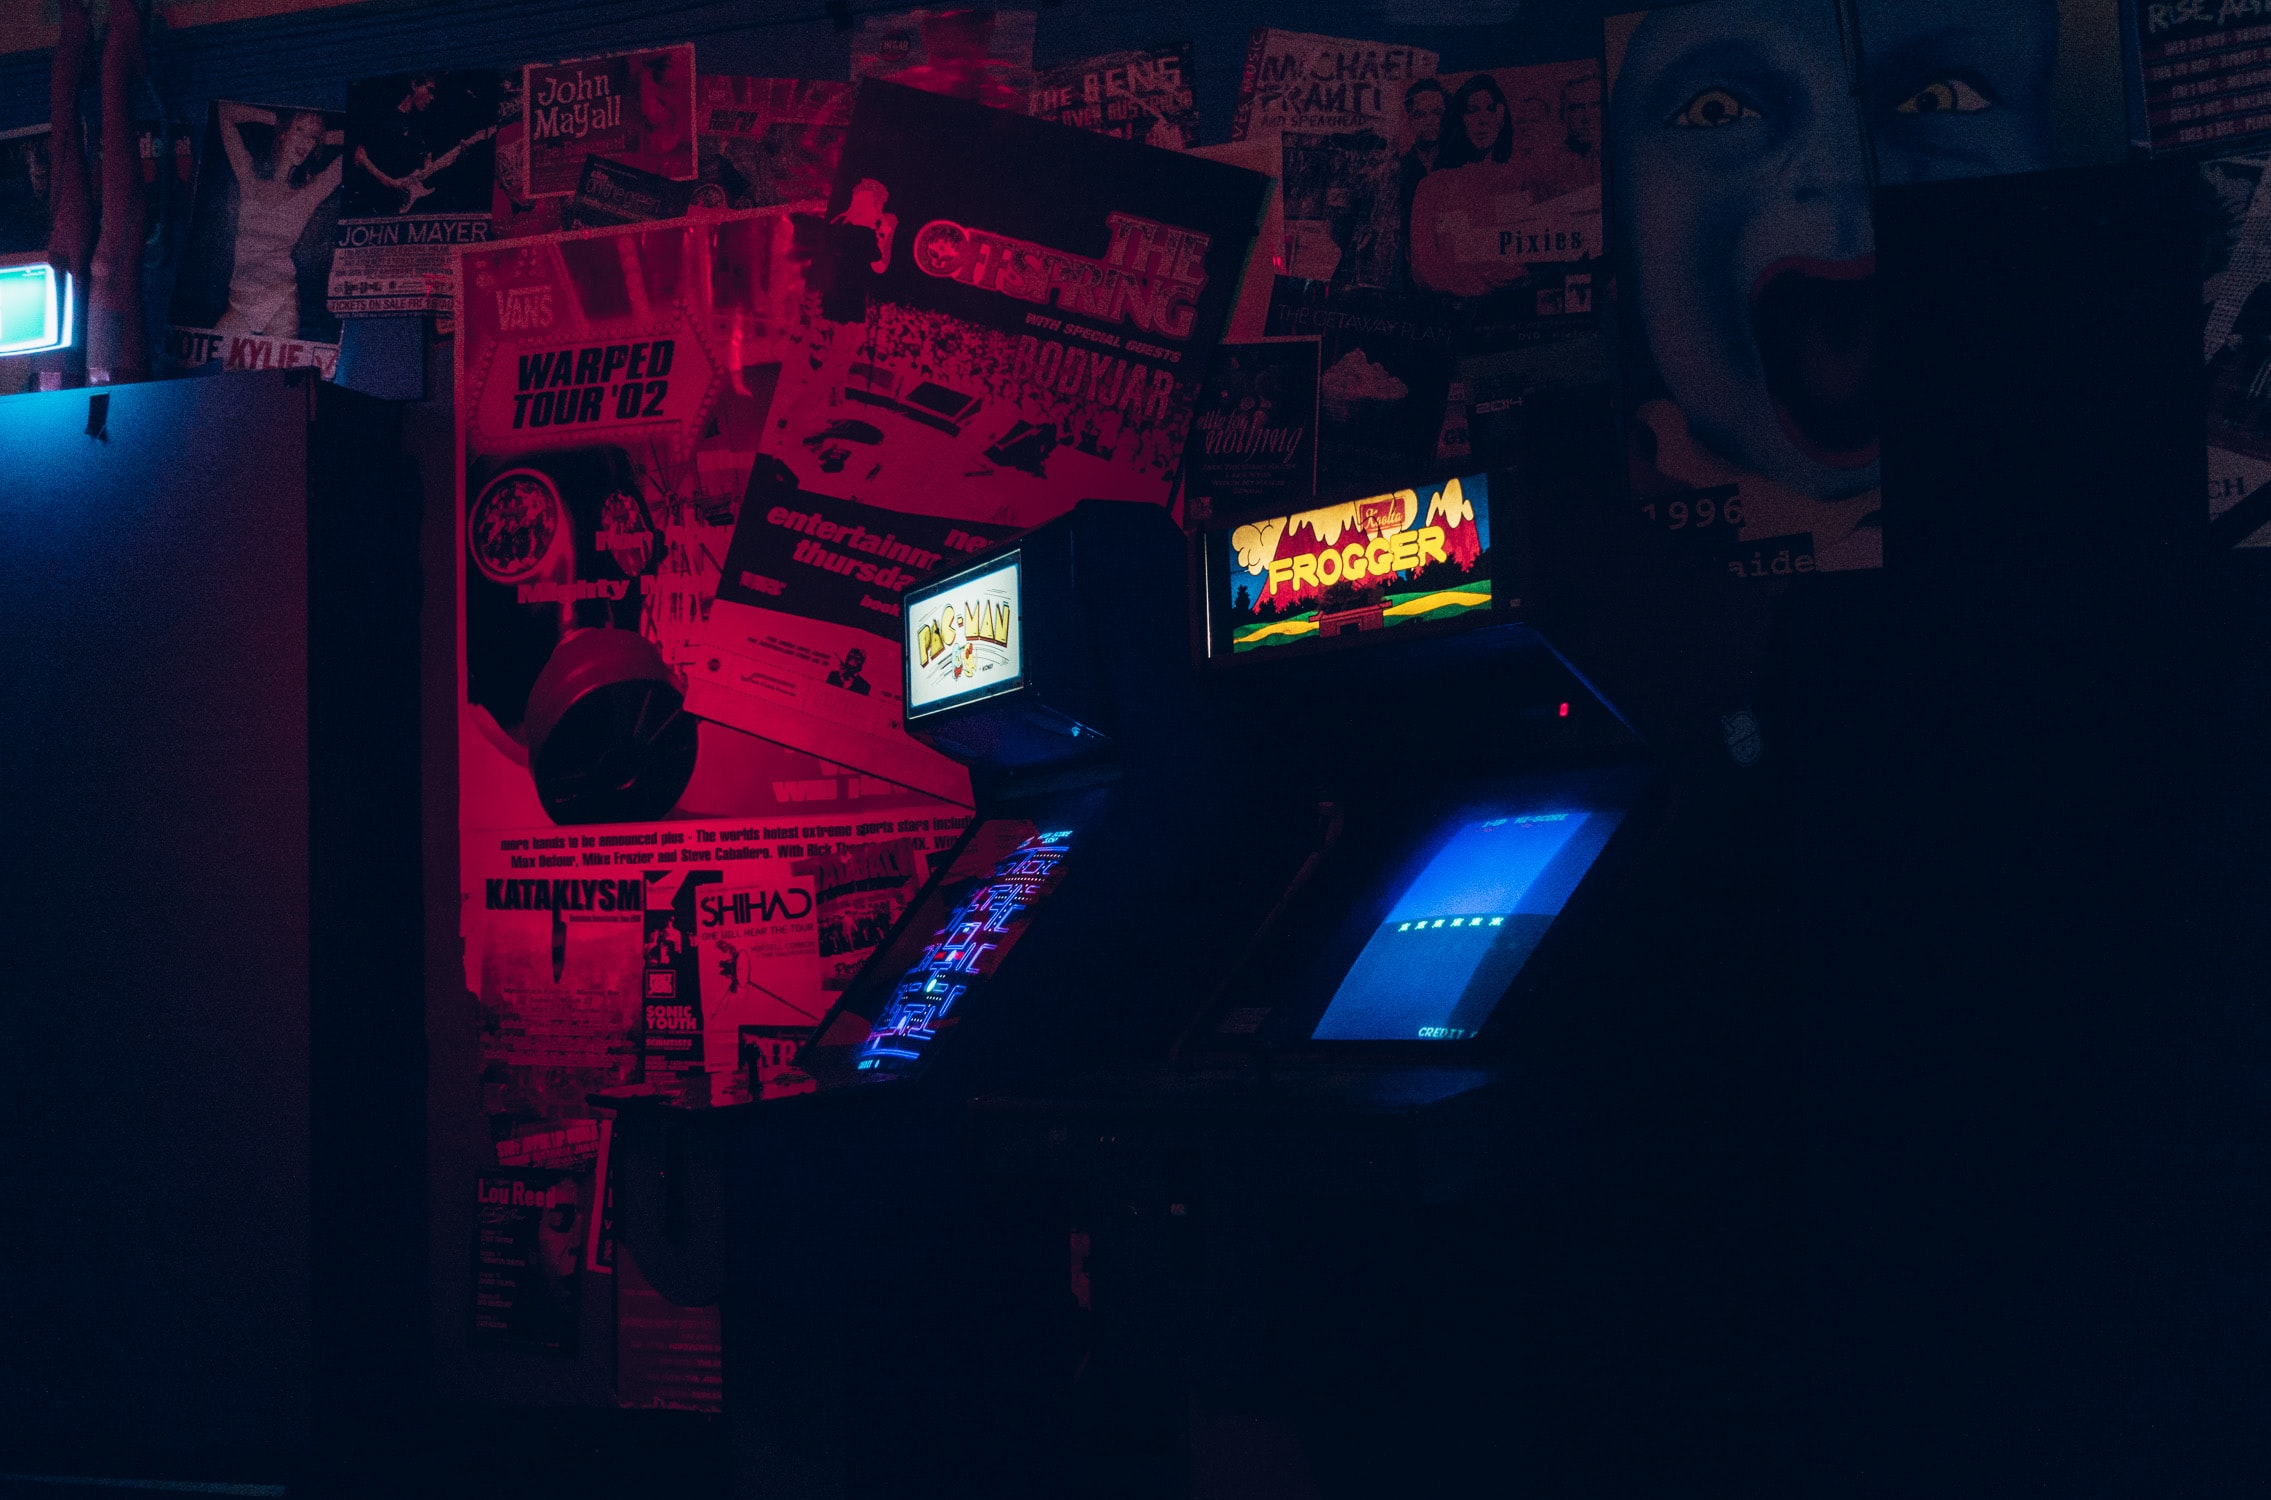 Fowler's live arcade game lights at night